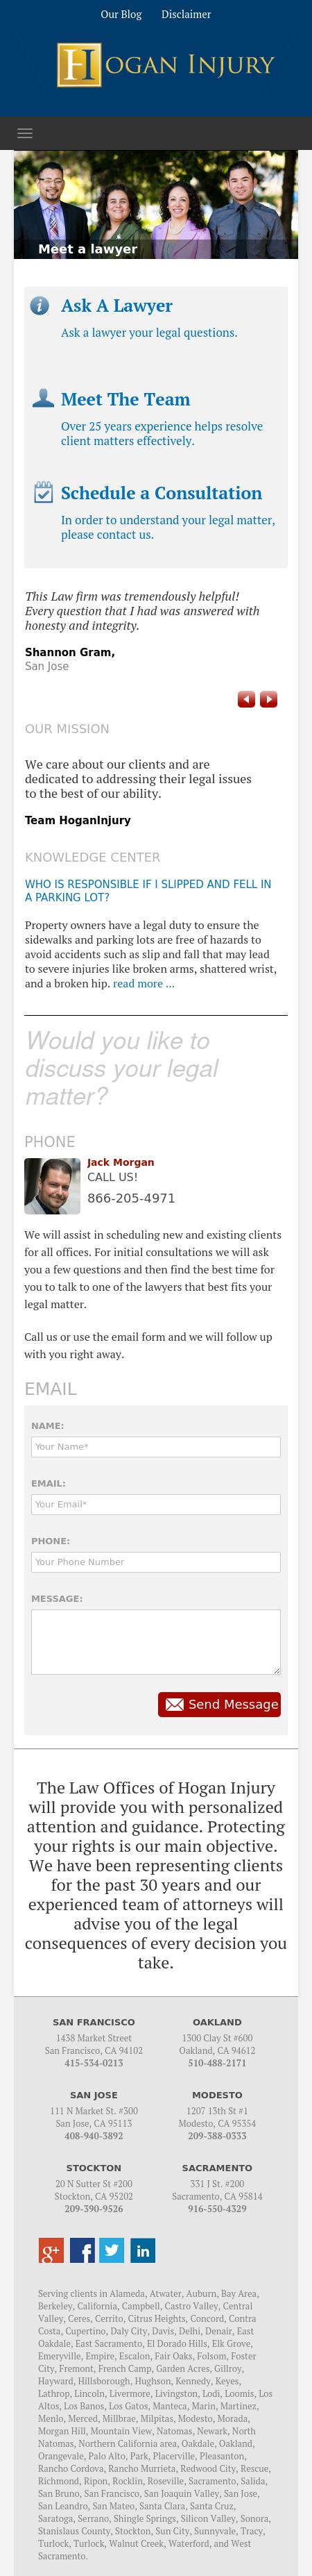 Hogan Injury - San Francisco CA Lawyers